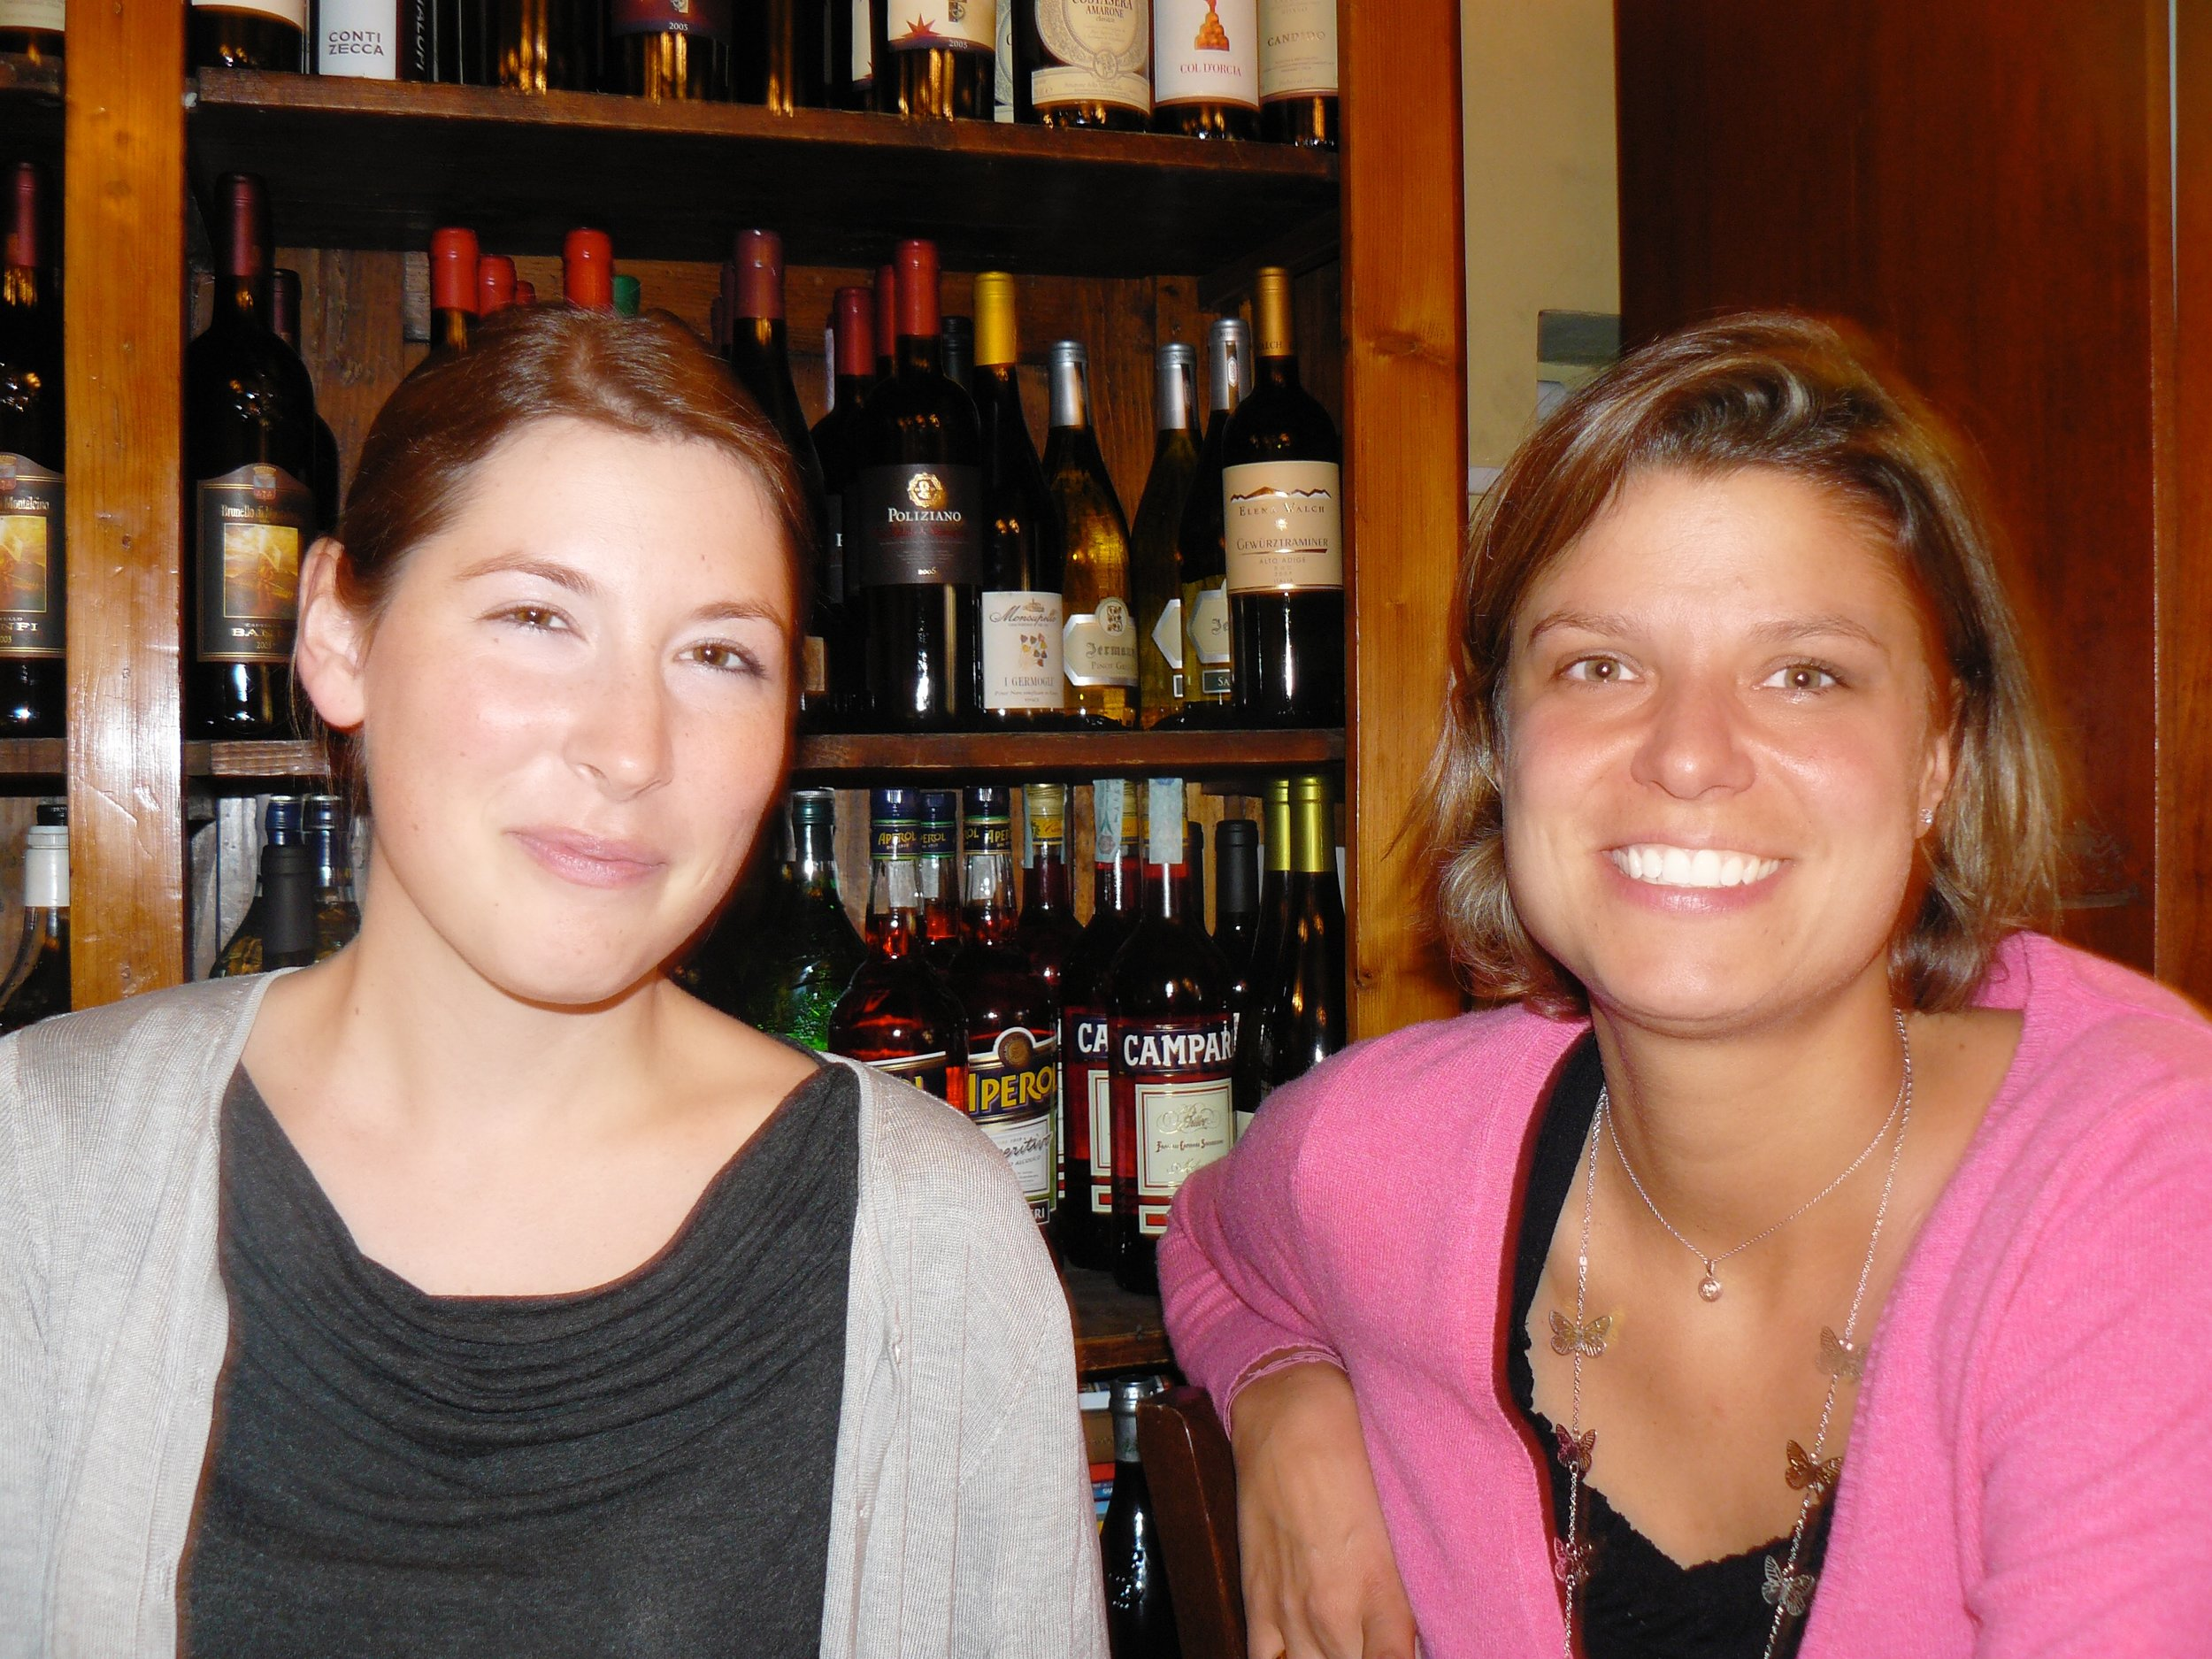 Italian conversation practice at a bar because, where else?